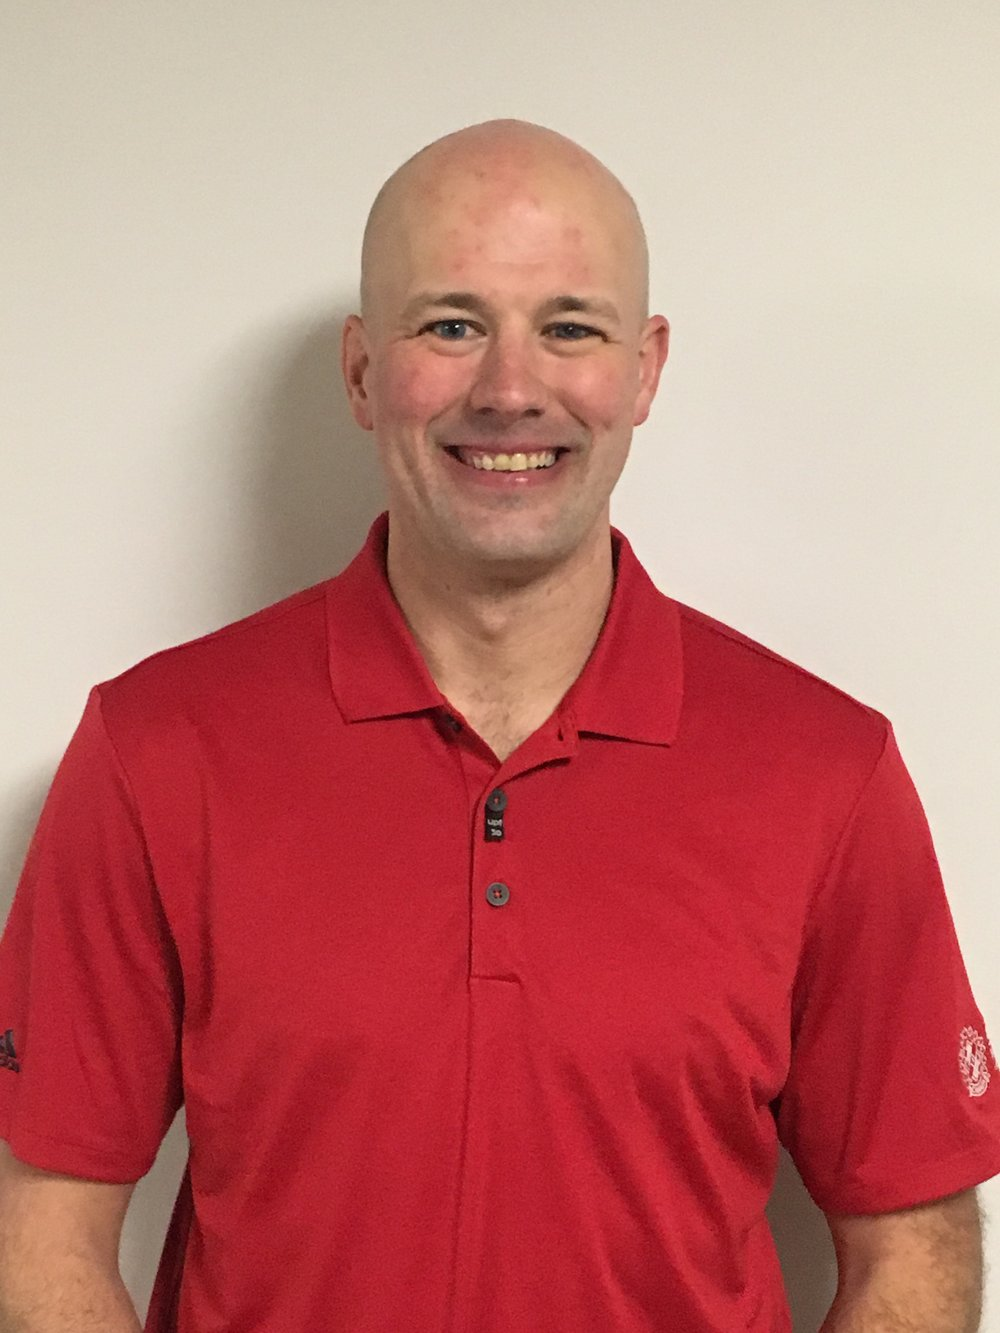 Jay Hutchison Vice President, 6th year Kinsmen General Manager at The Shooting Academy Listowel Inc.